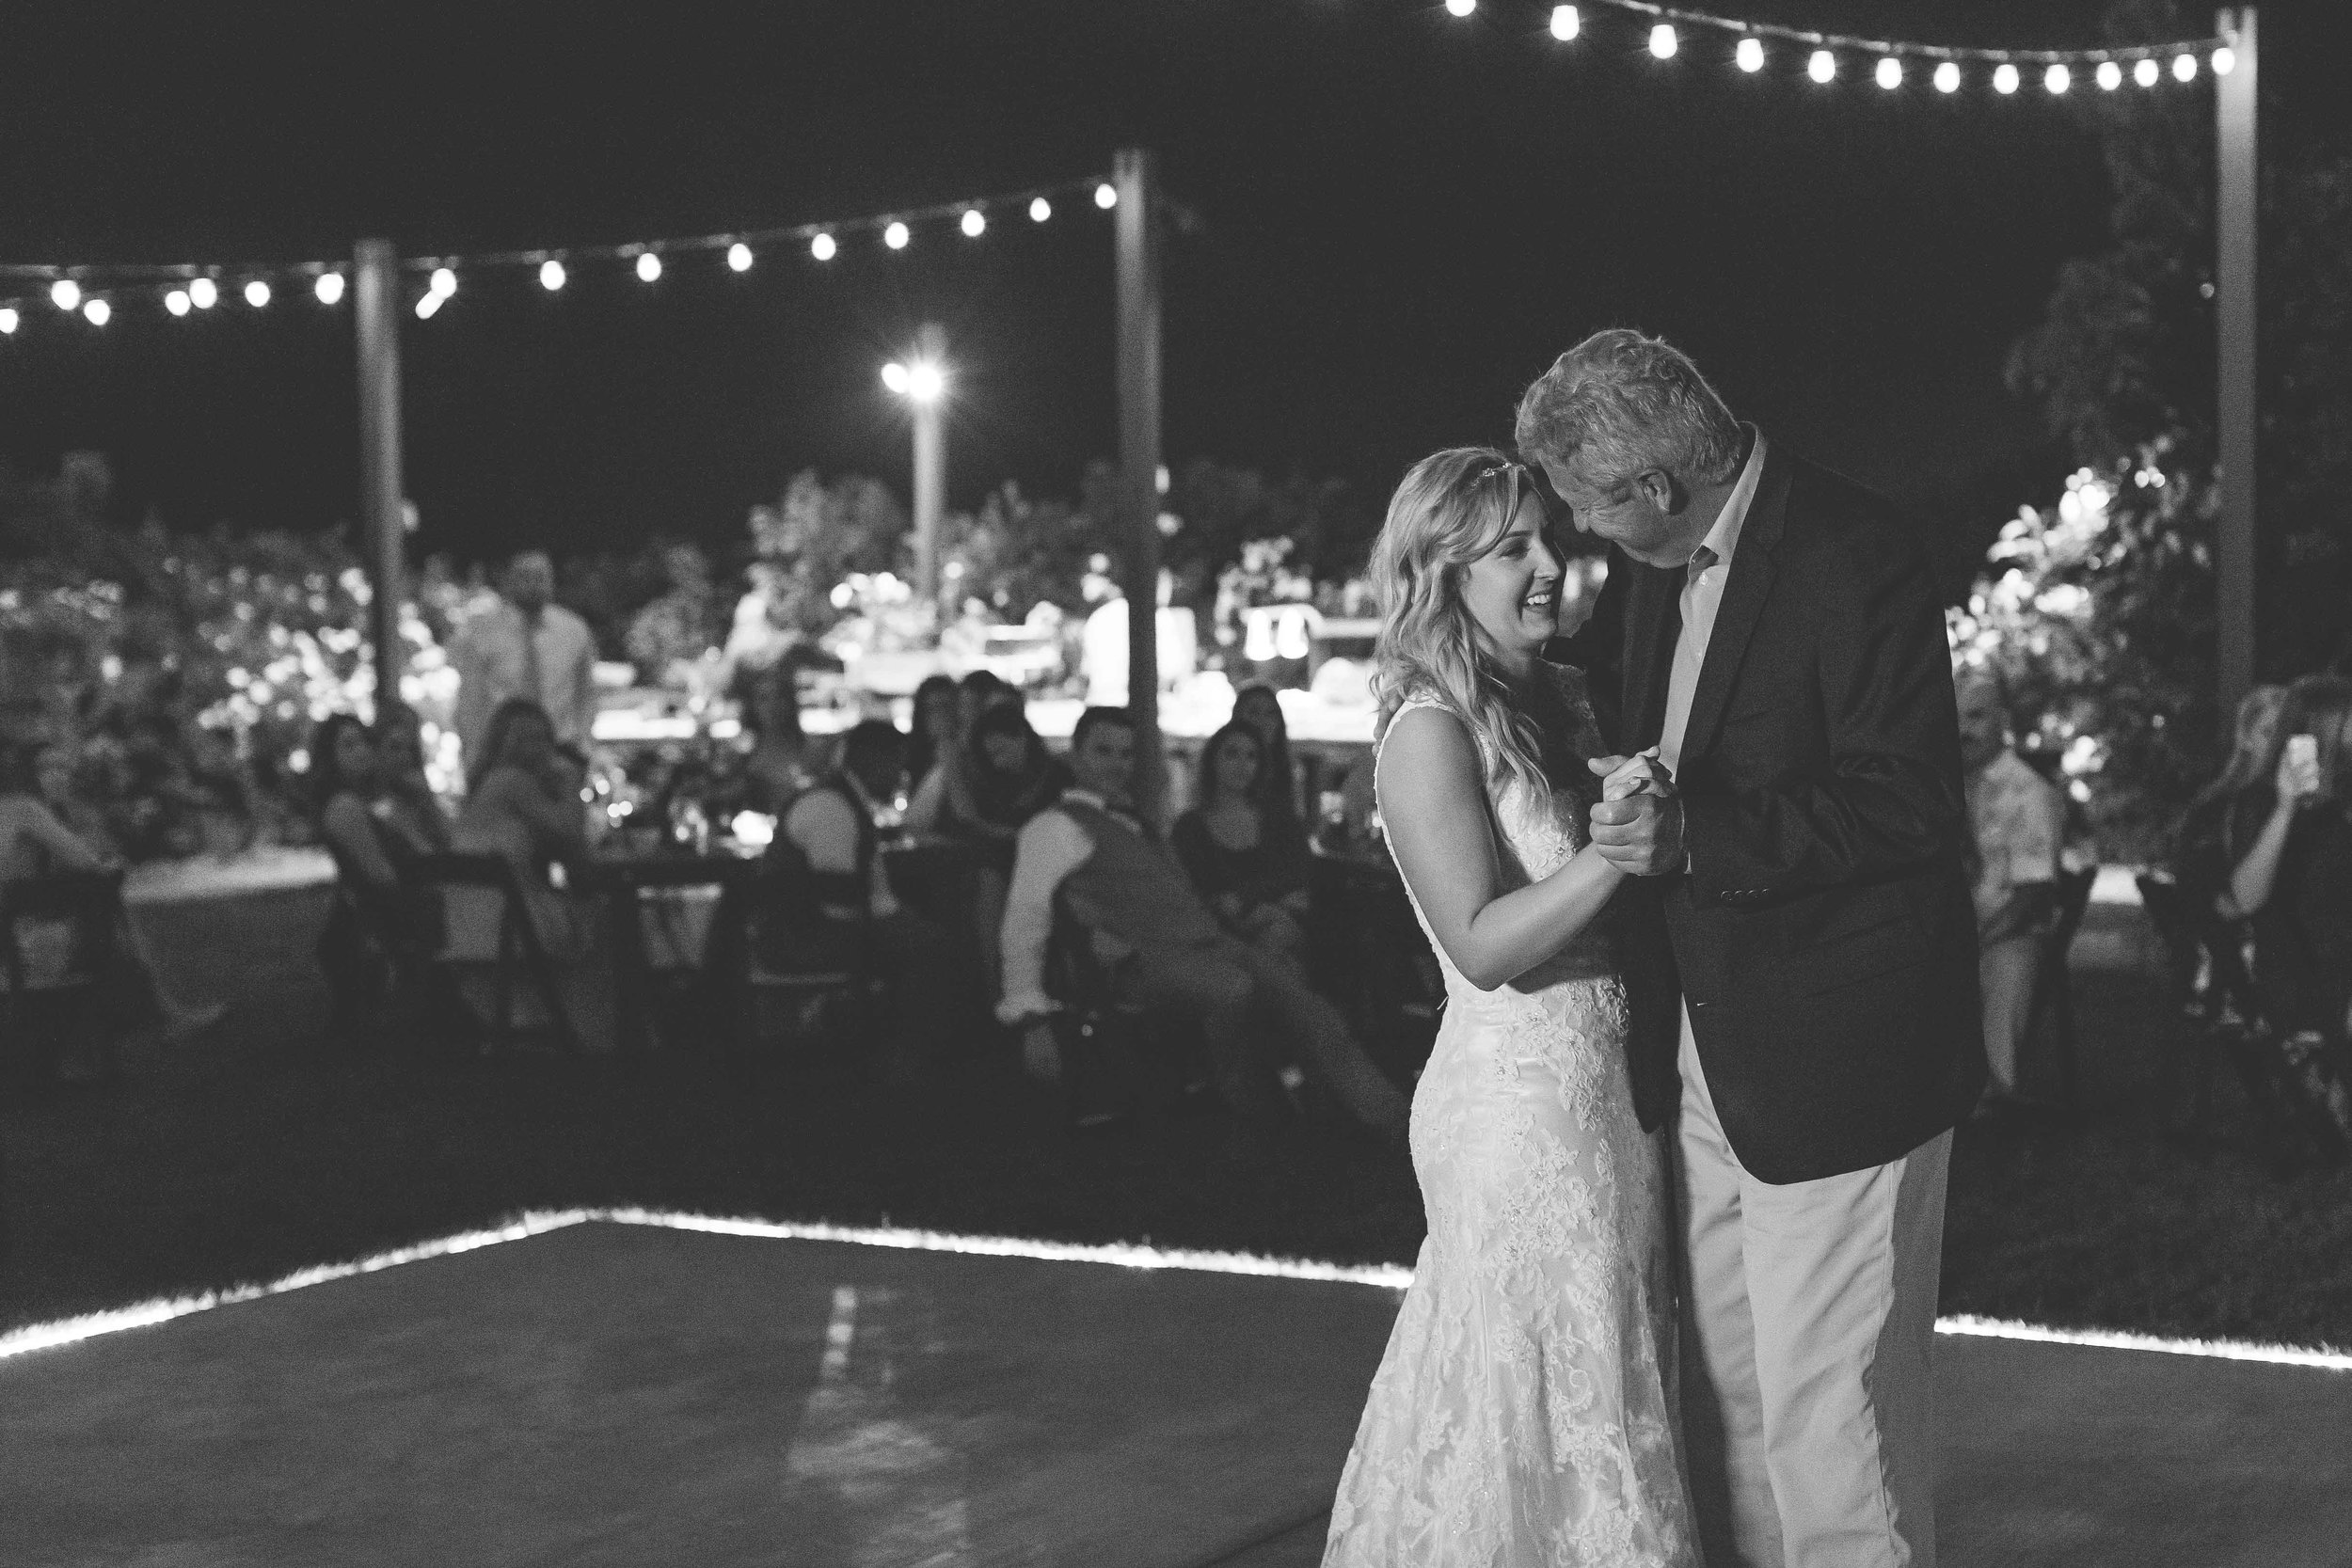 2015-Perkinson-Wedding-GerrysRanch-0220-web.jpg